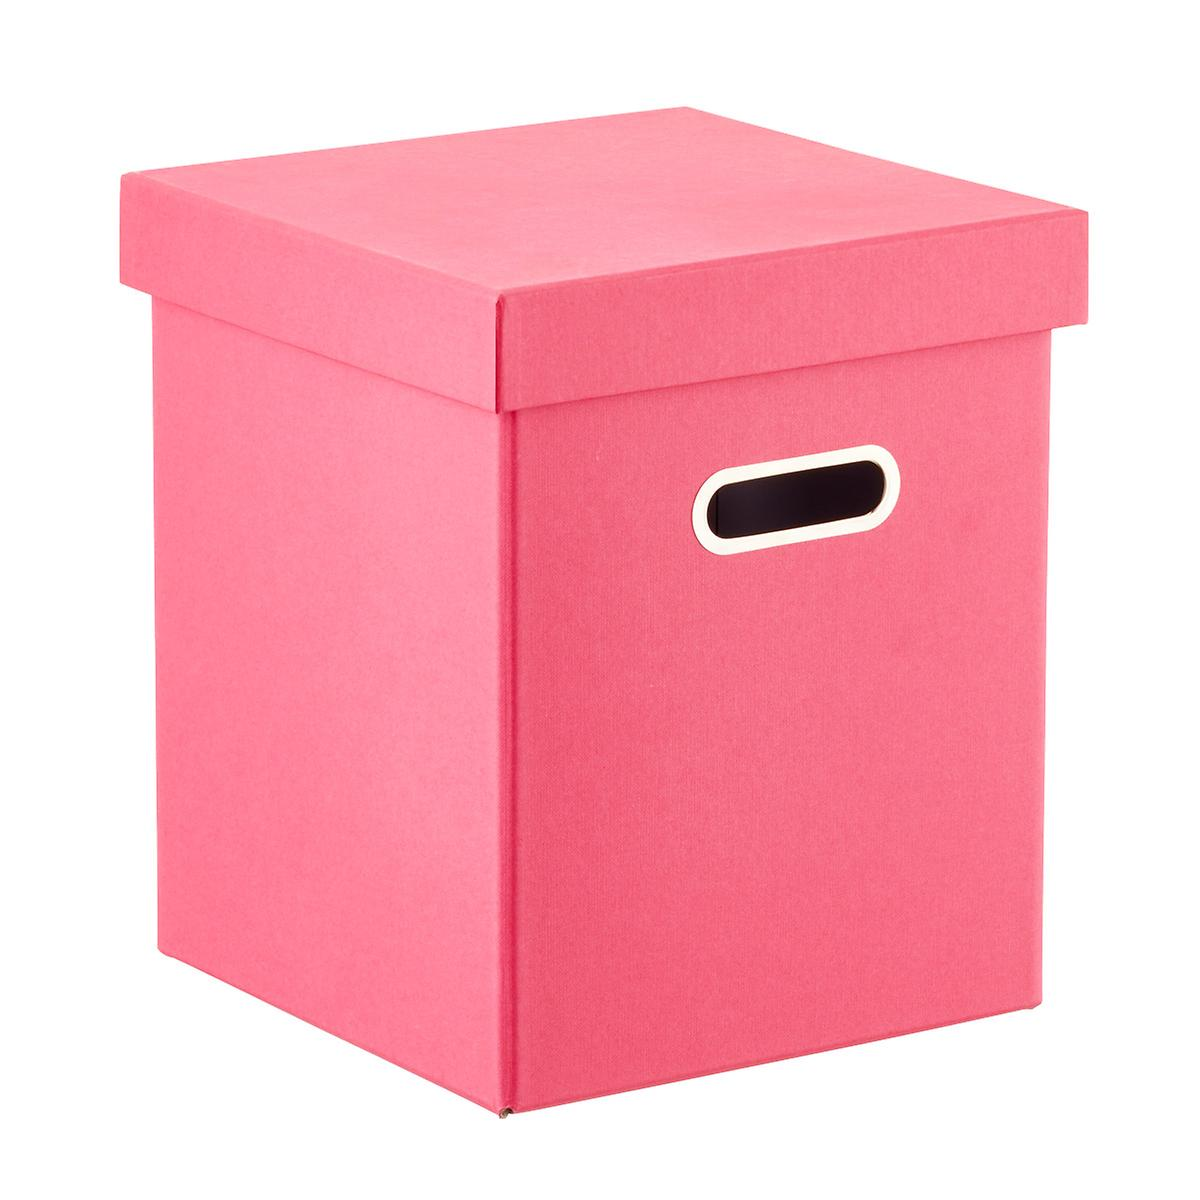 Bigso Pink Milo Toy Box Seat with Handles